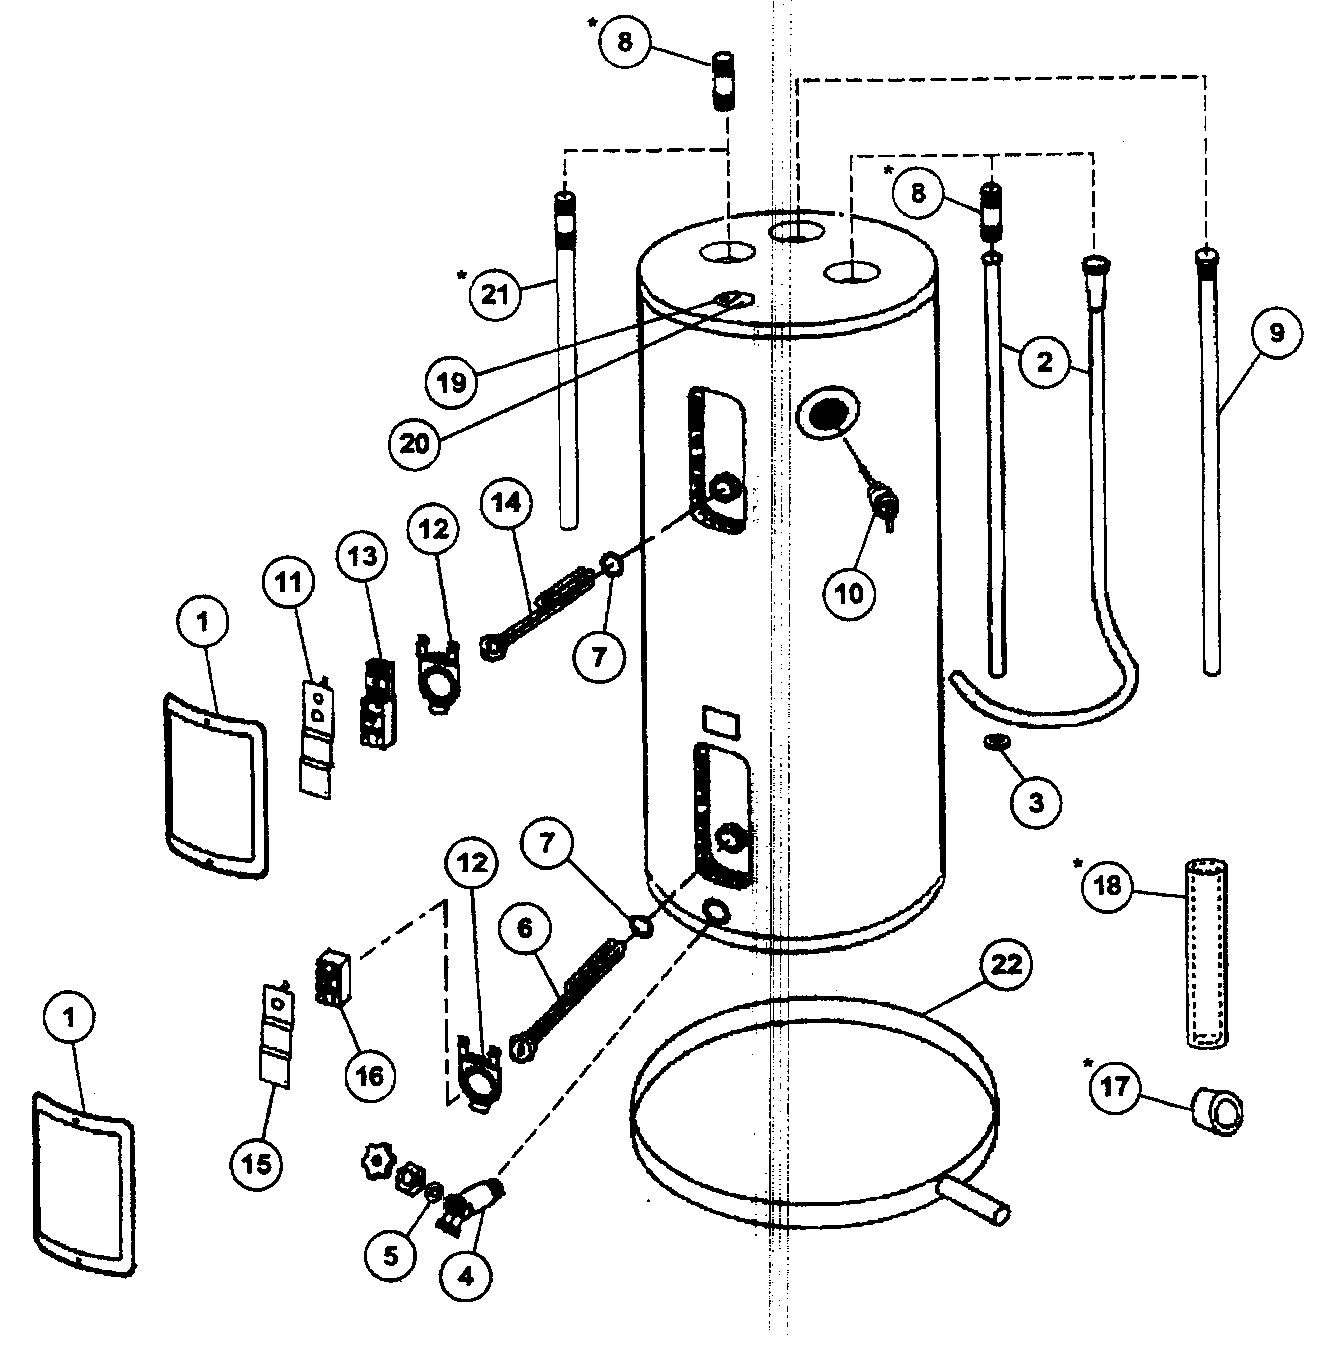 hot water system wiring diagram for dual 4 ohm subwoofer camco heater thermostat